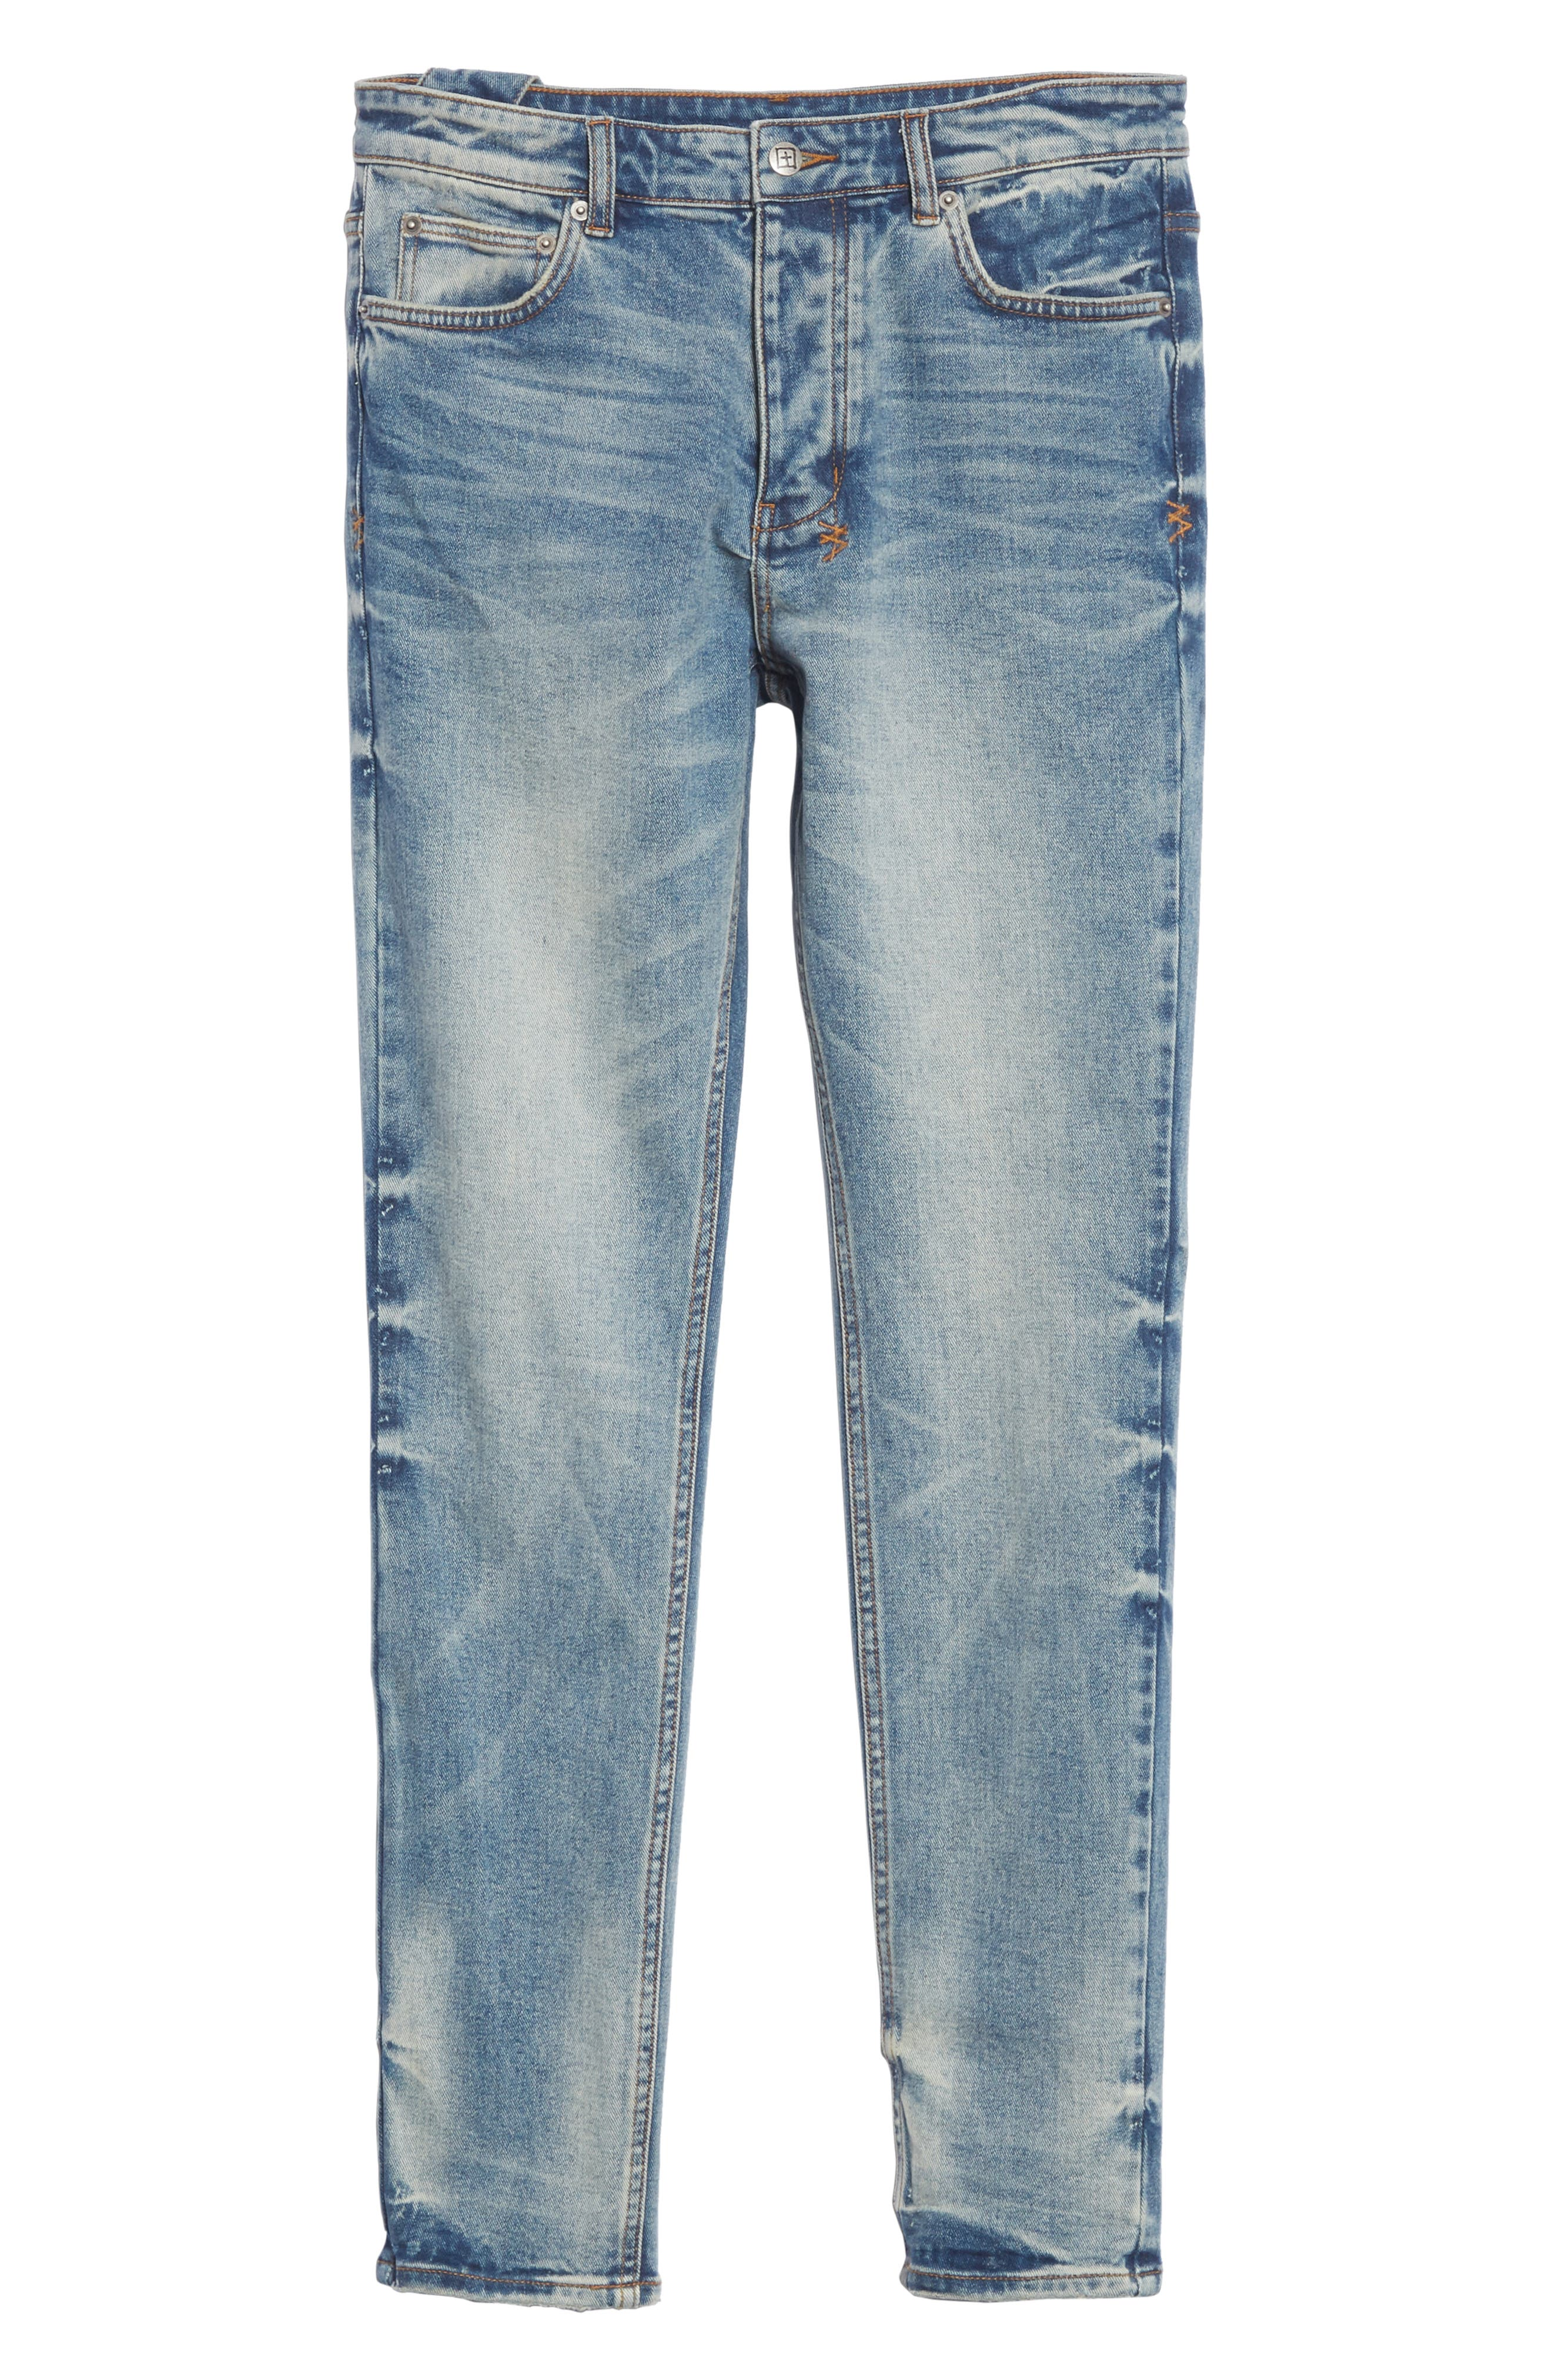 Chitch Pure Dynamite Skinny Fit Jeans,                             Alternate thumbnail 6, color,                             DENIM